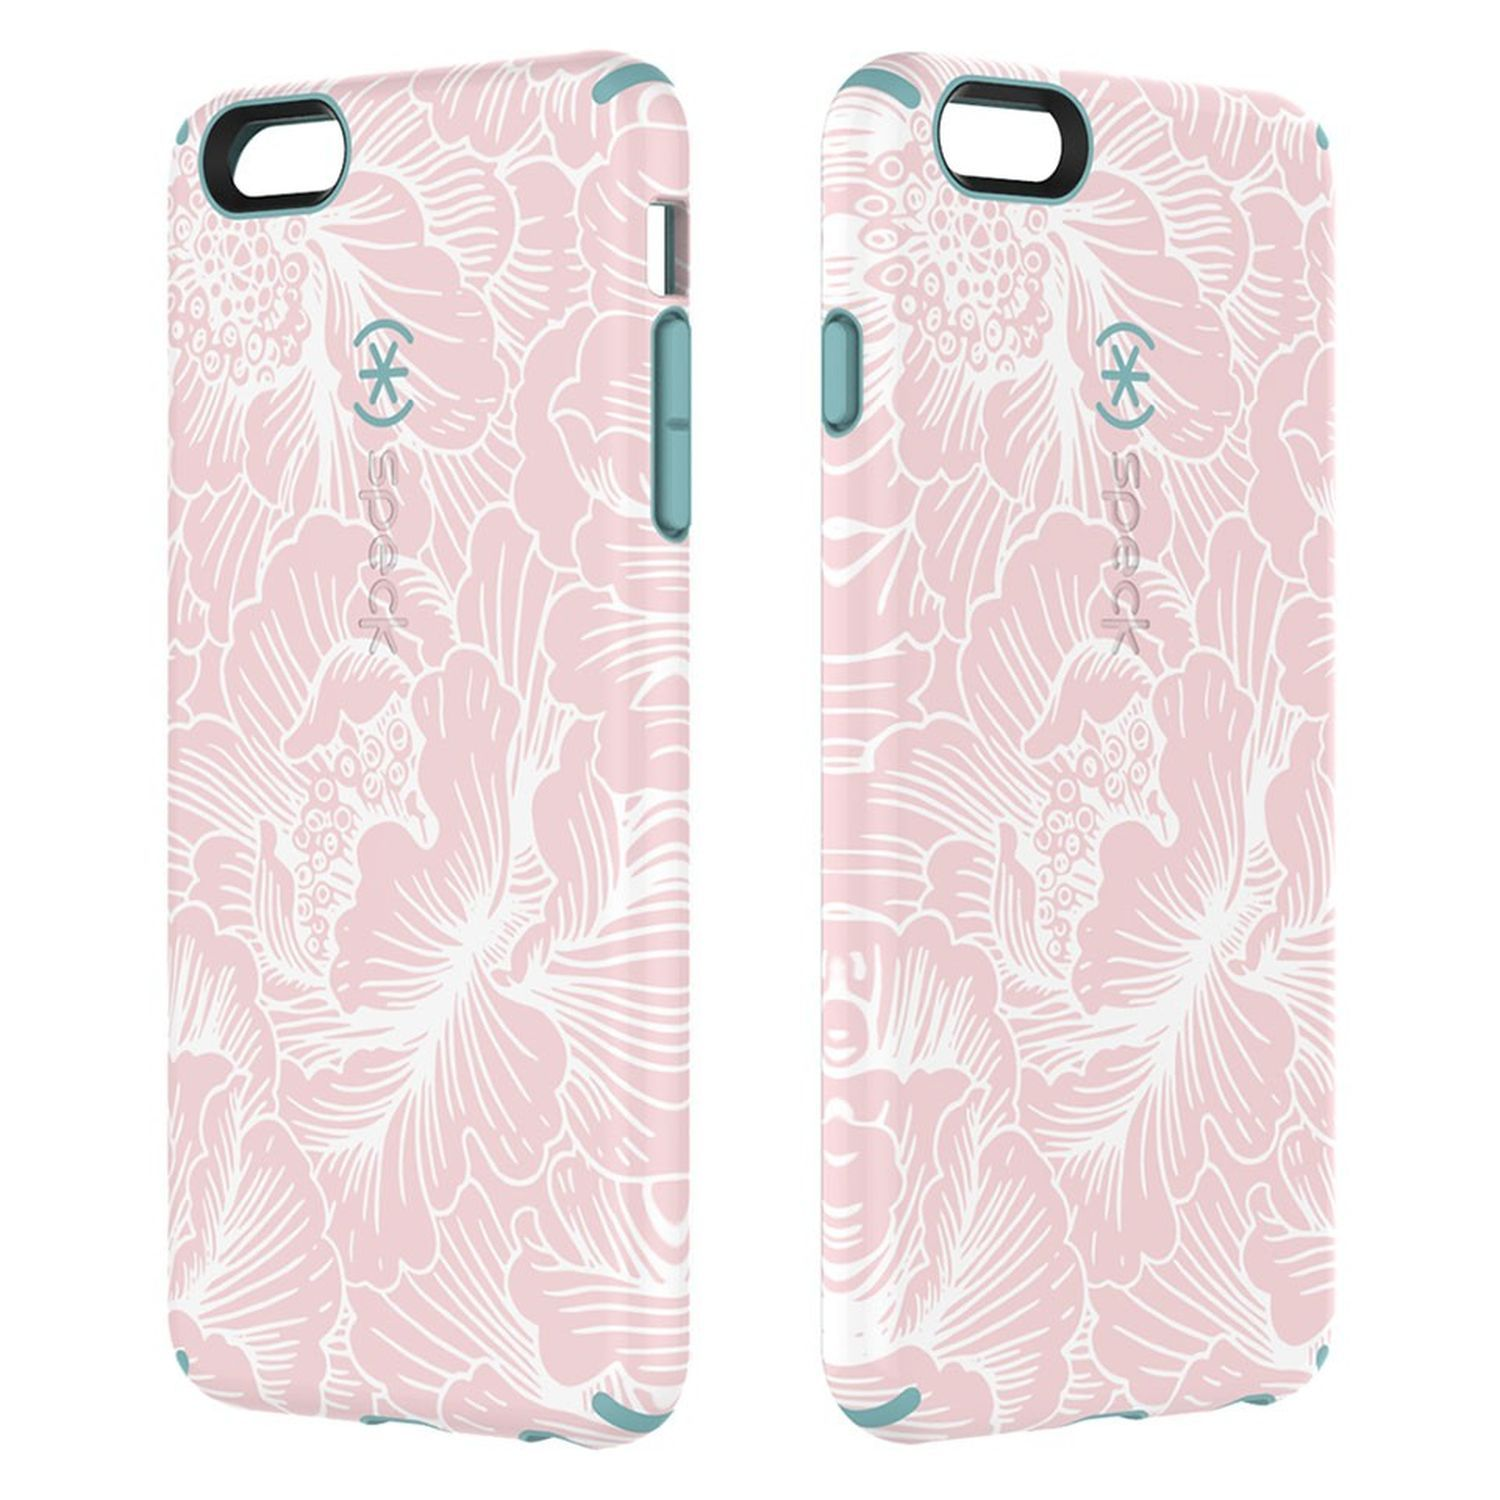 premium selection dac96 9a92c Speck - Candyshell Inked iPhone 6sPlus | iPhone | Iphone 6 plus case ...